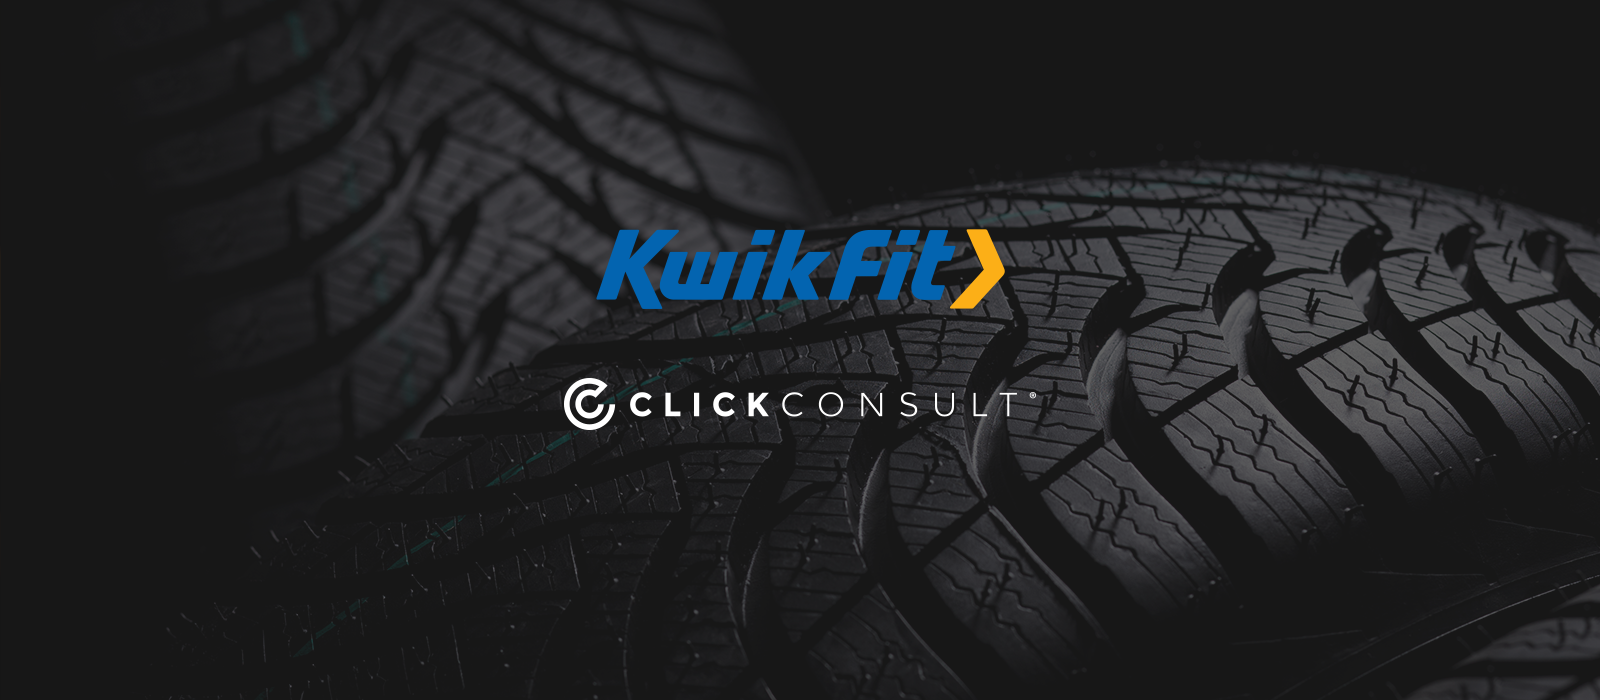 Click Consult and Kwik Fit work together on online strategy